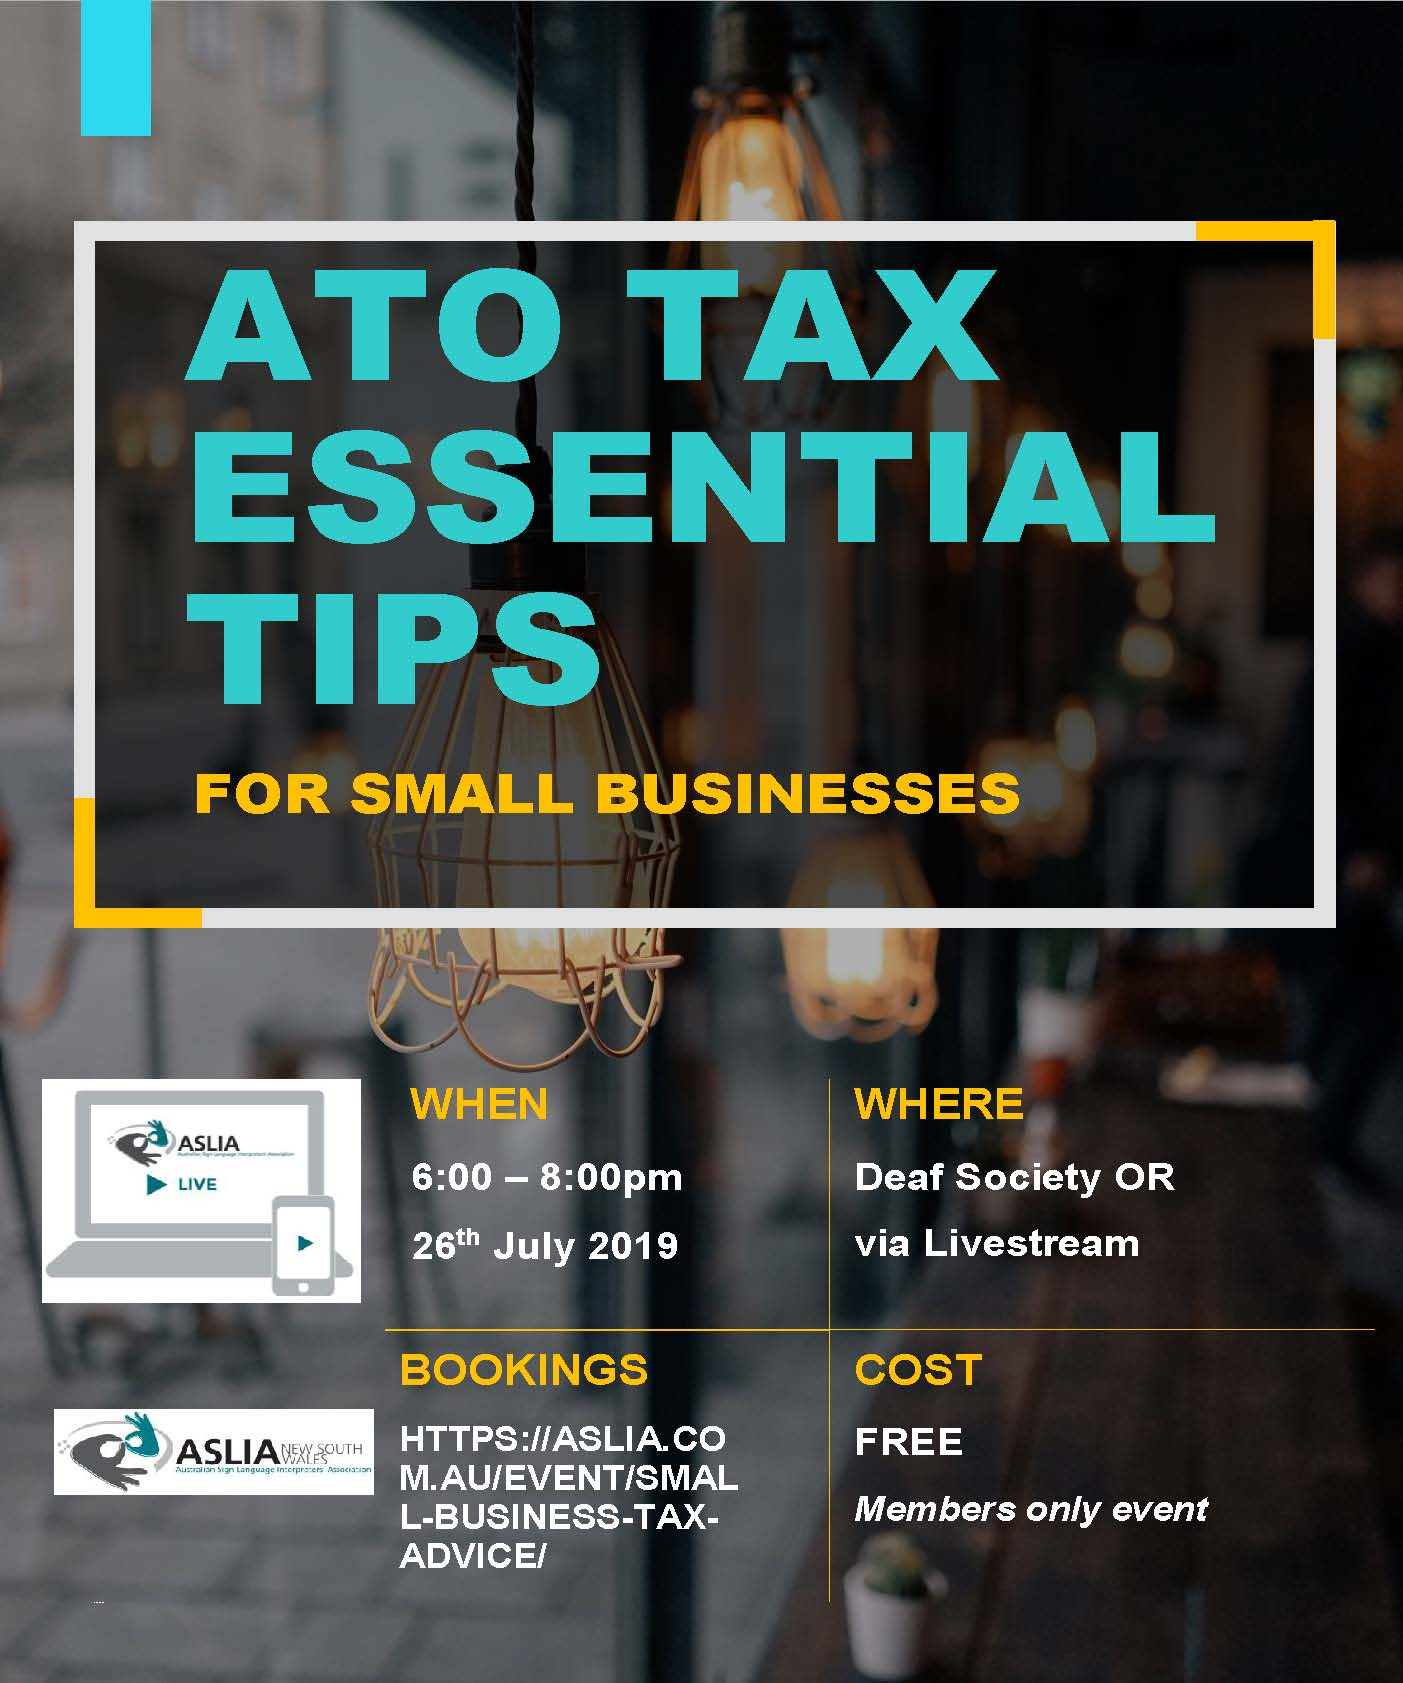 Tax Essential Tips for Small Businesses